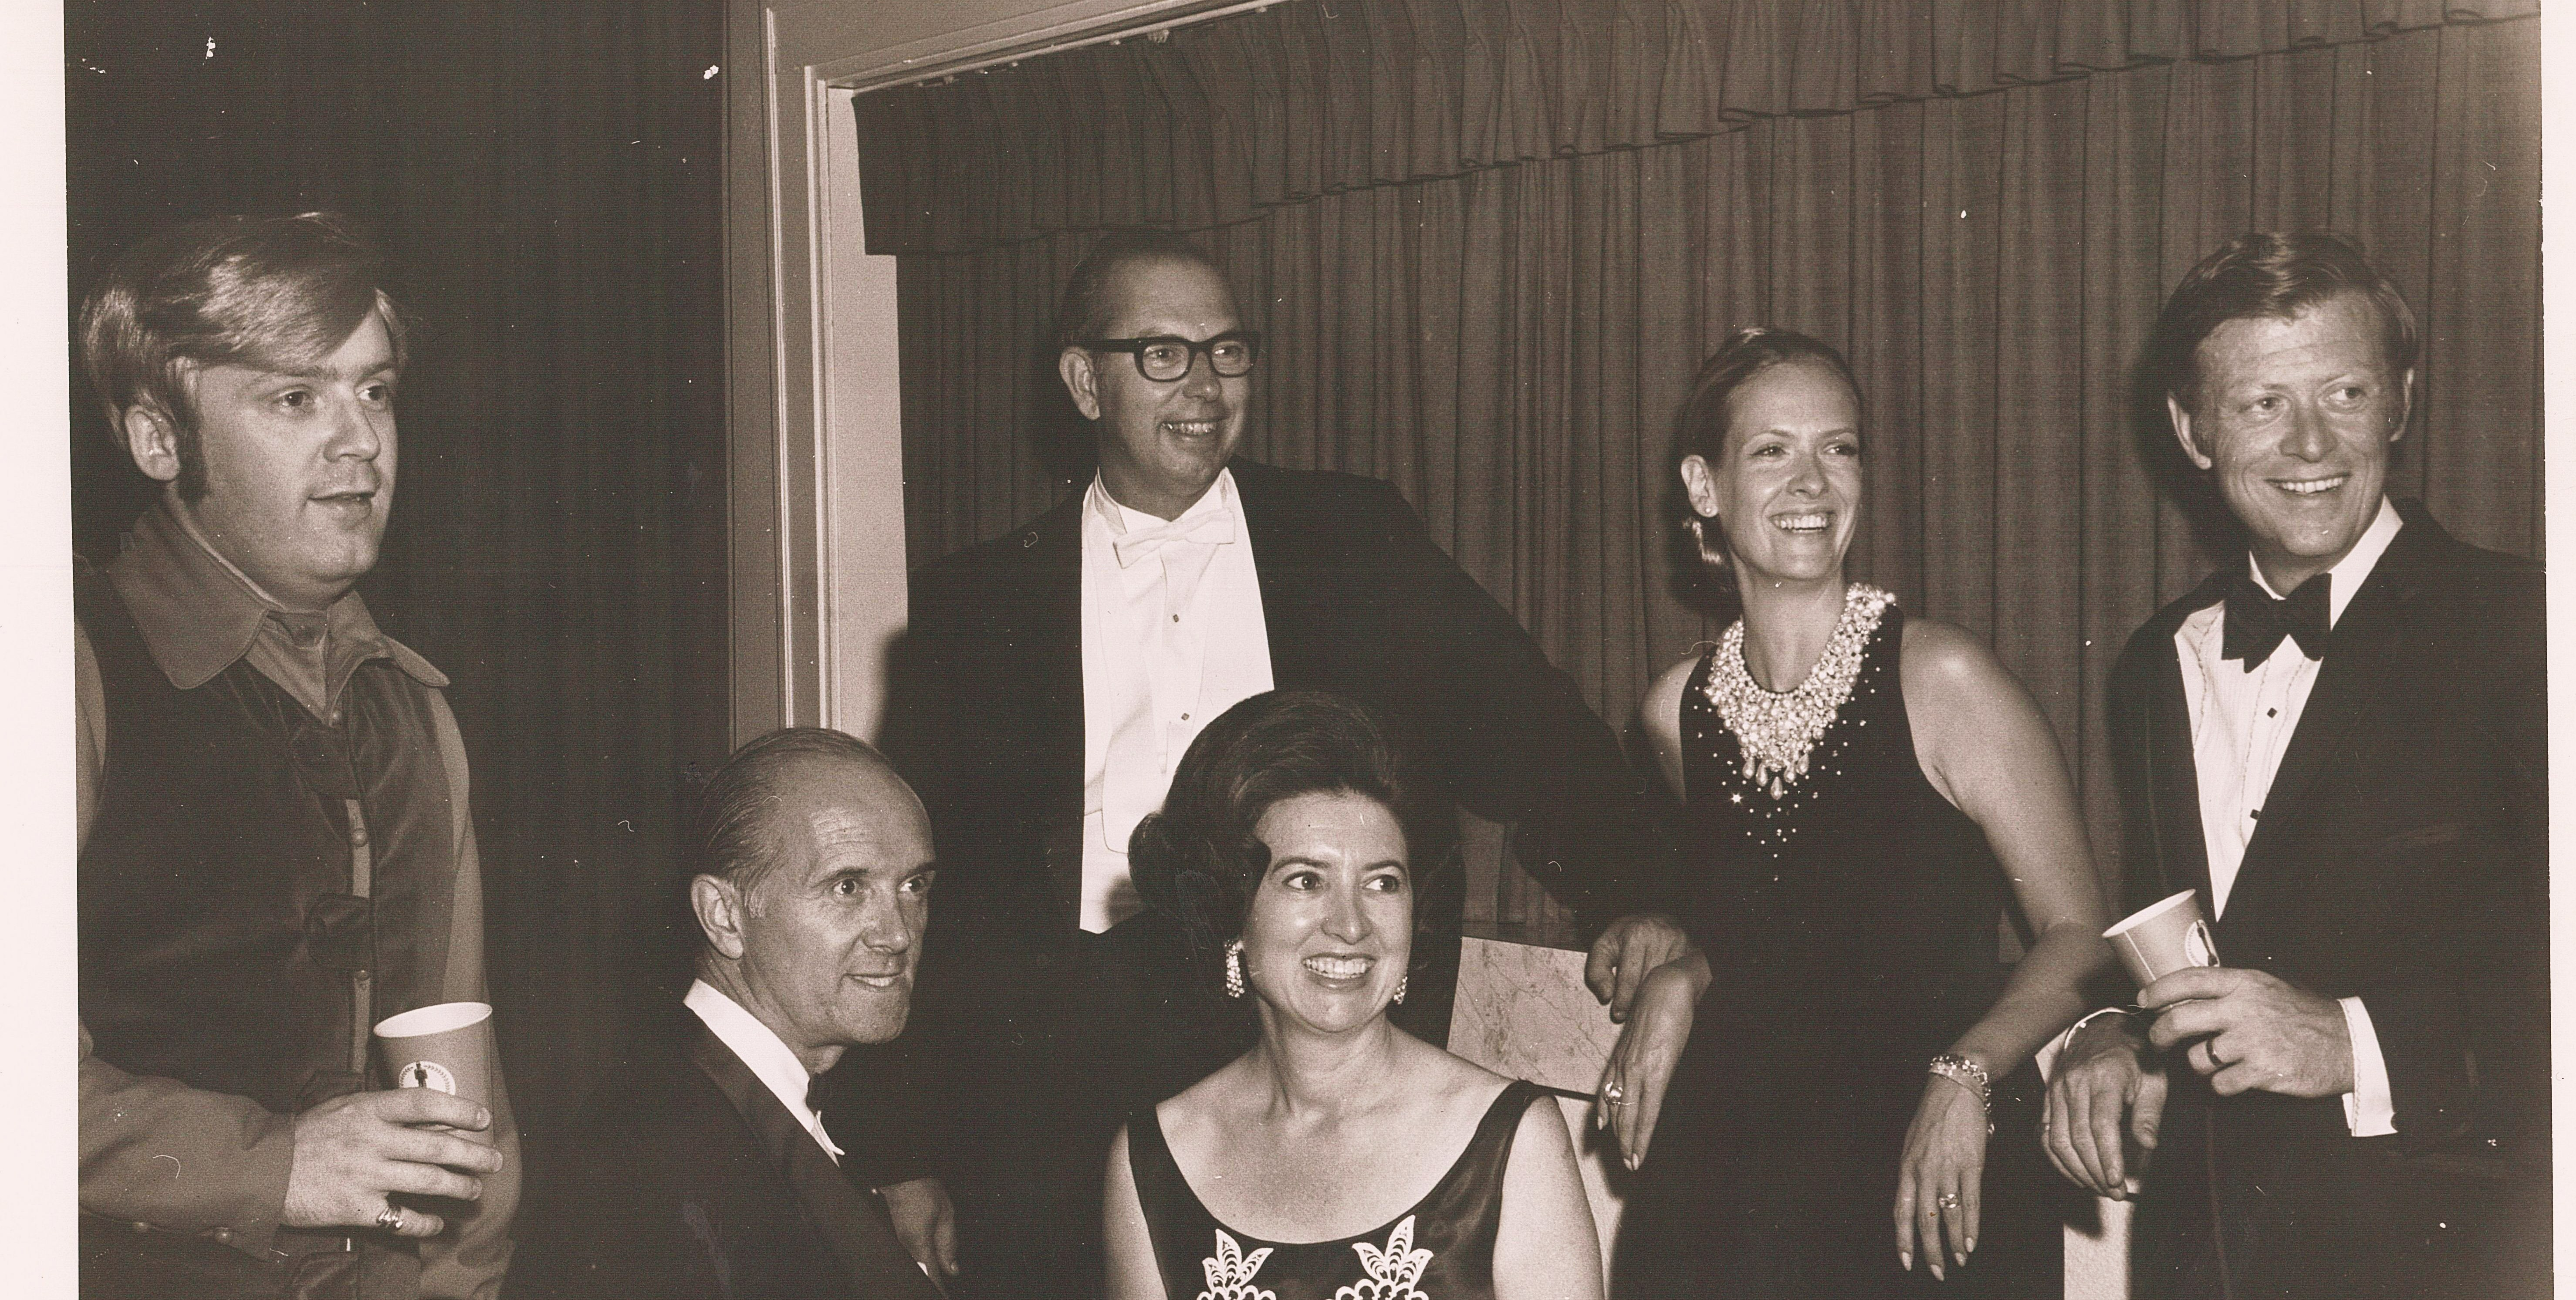 LOCAL HERO: Armed with Midas touch, Patterson built KC's opera company from the ground up